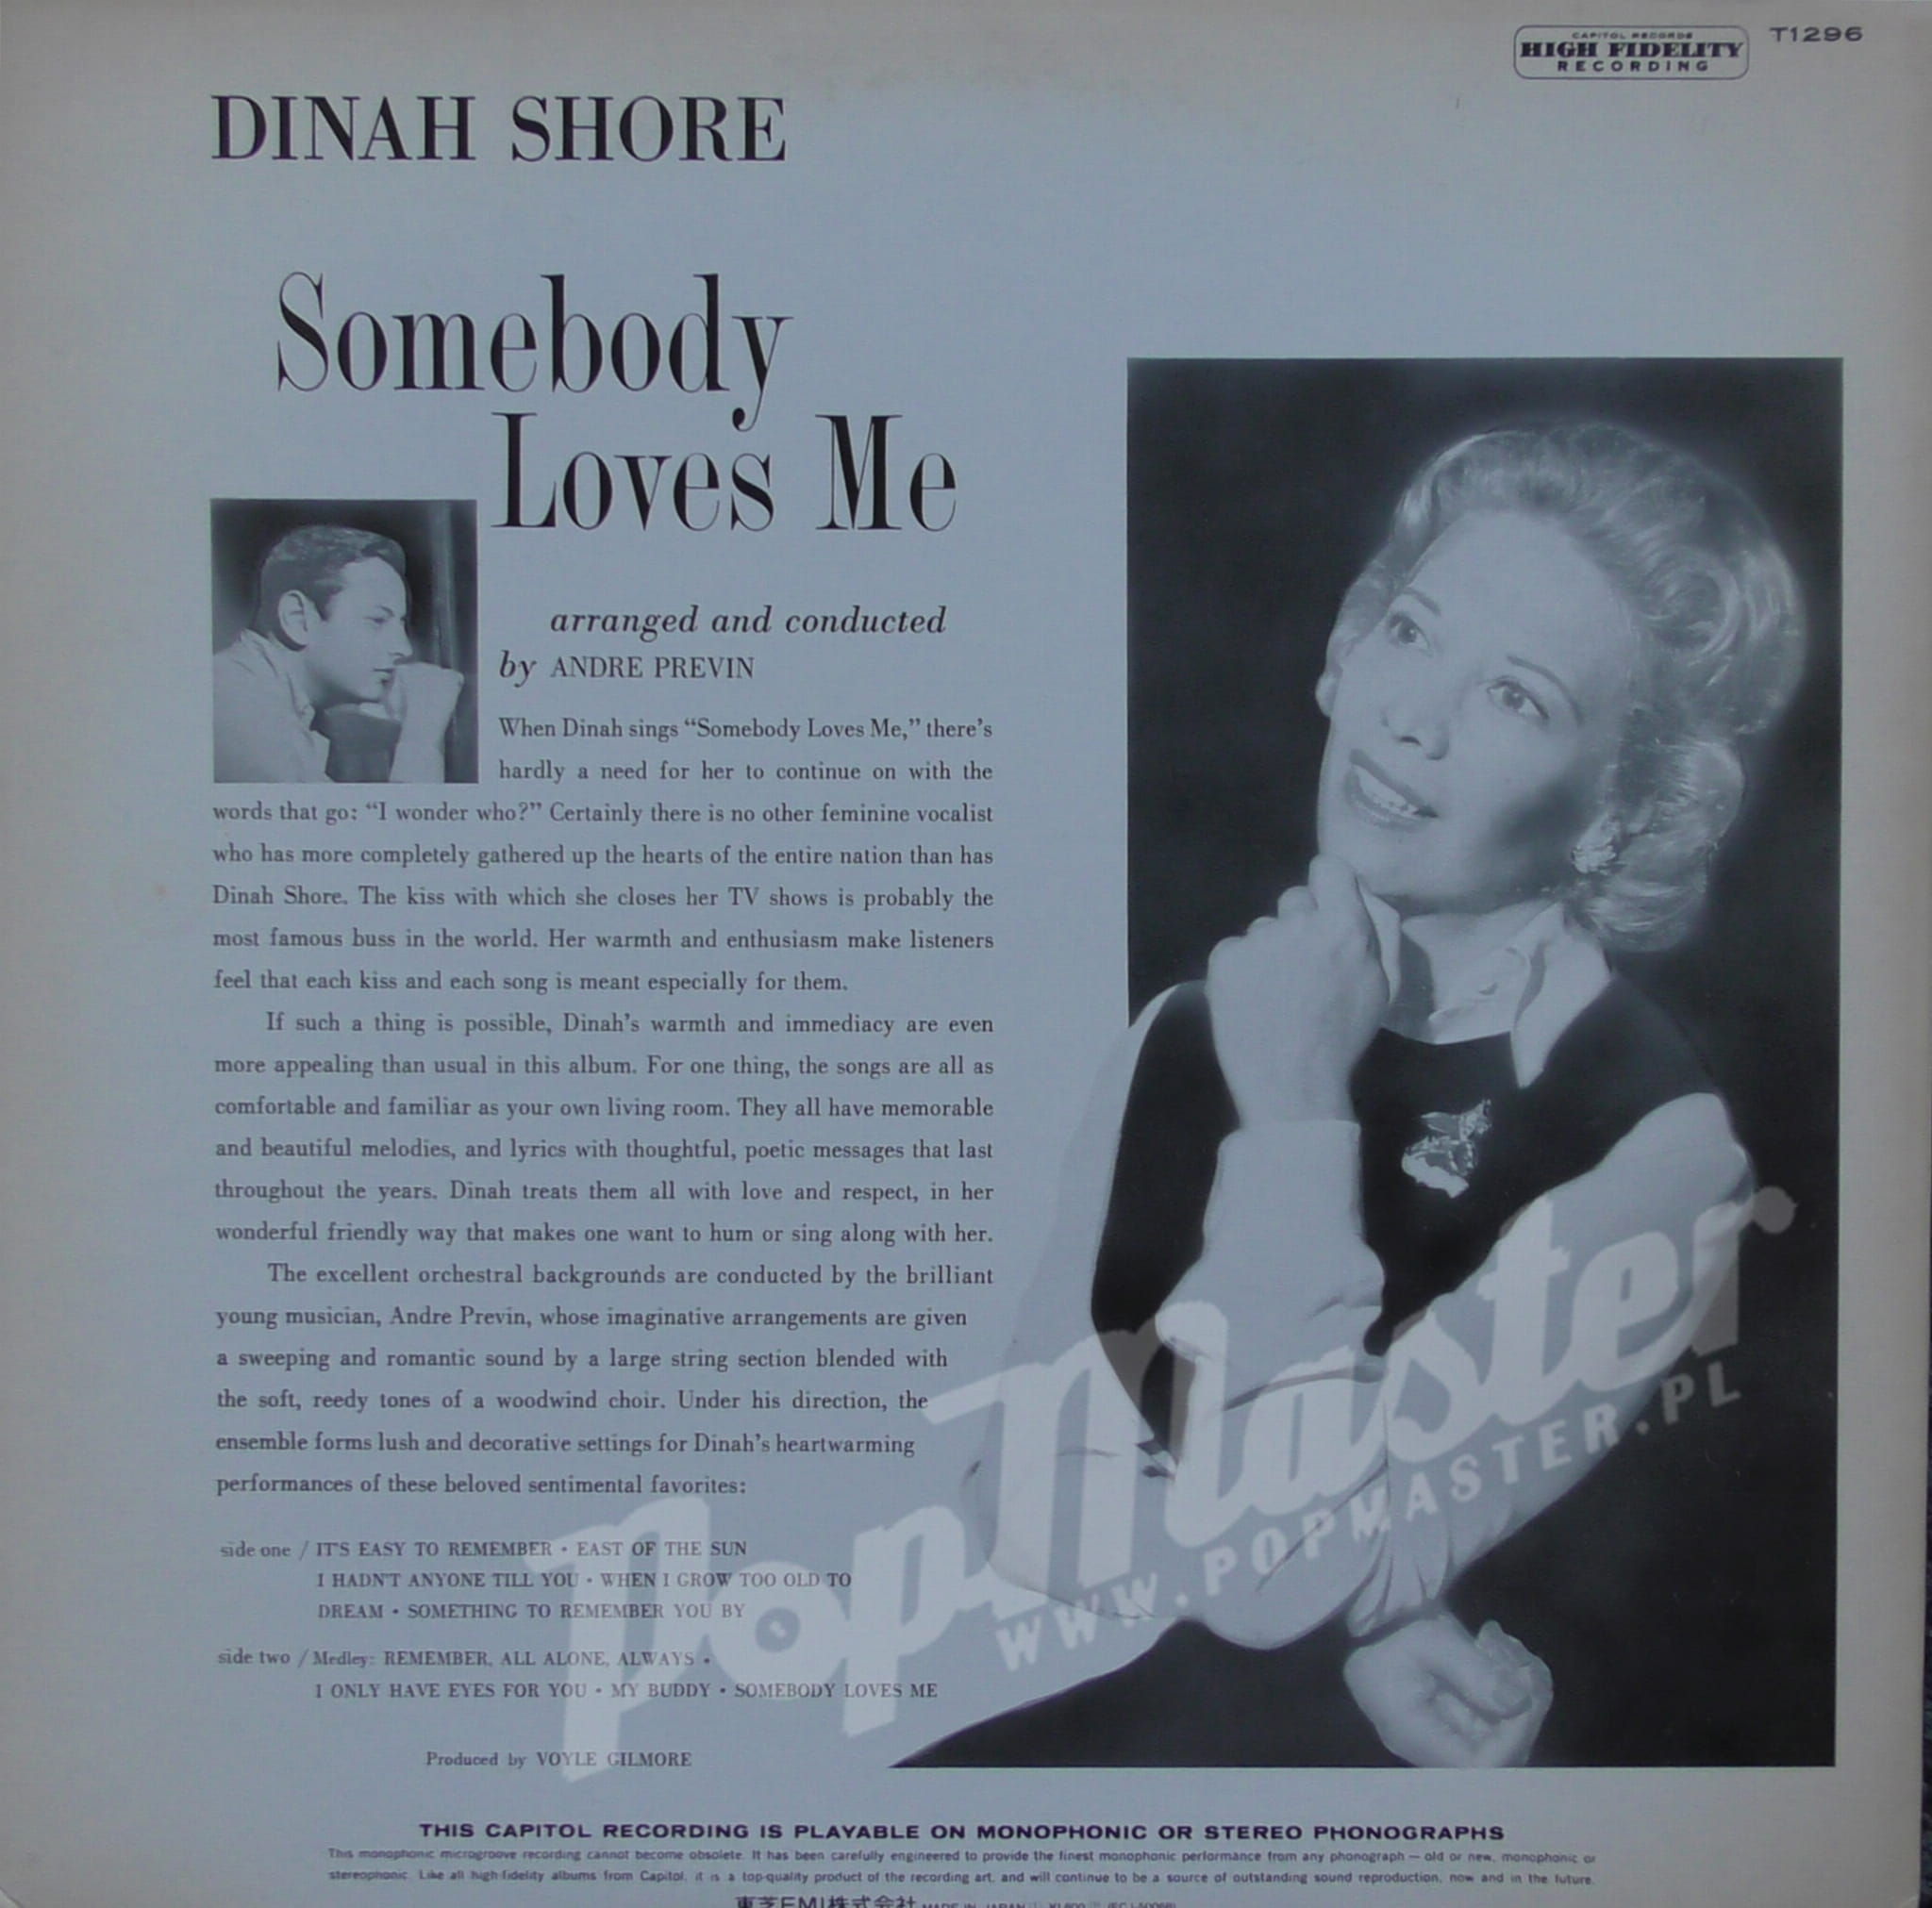 Dinah Shore Somebody Loves Me Orchestra Conducted By Andre